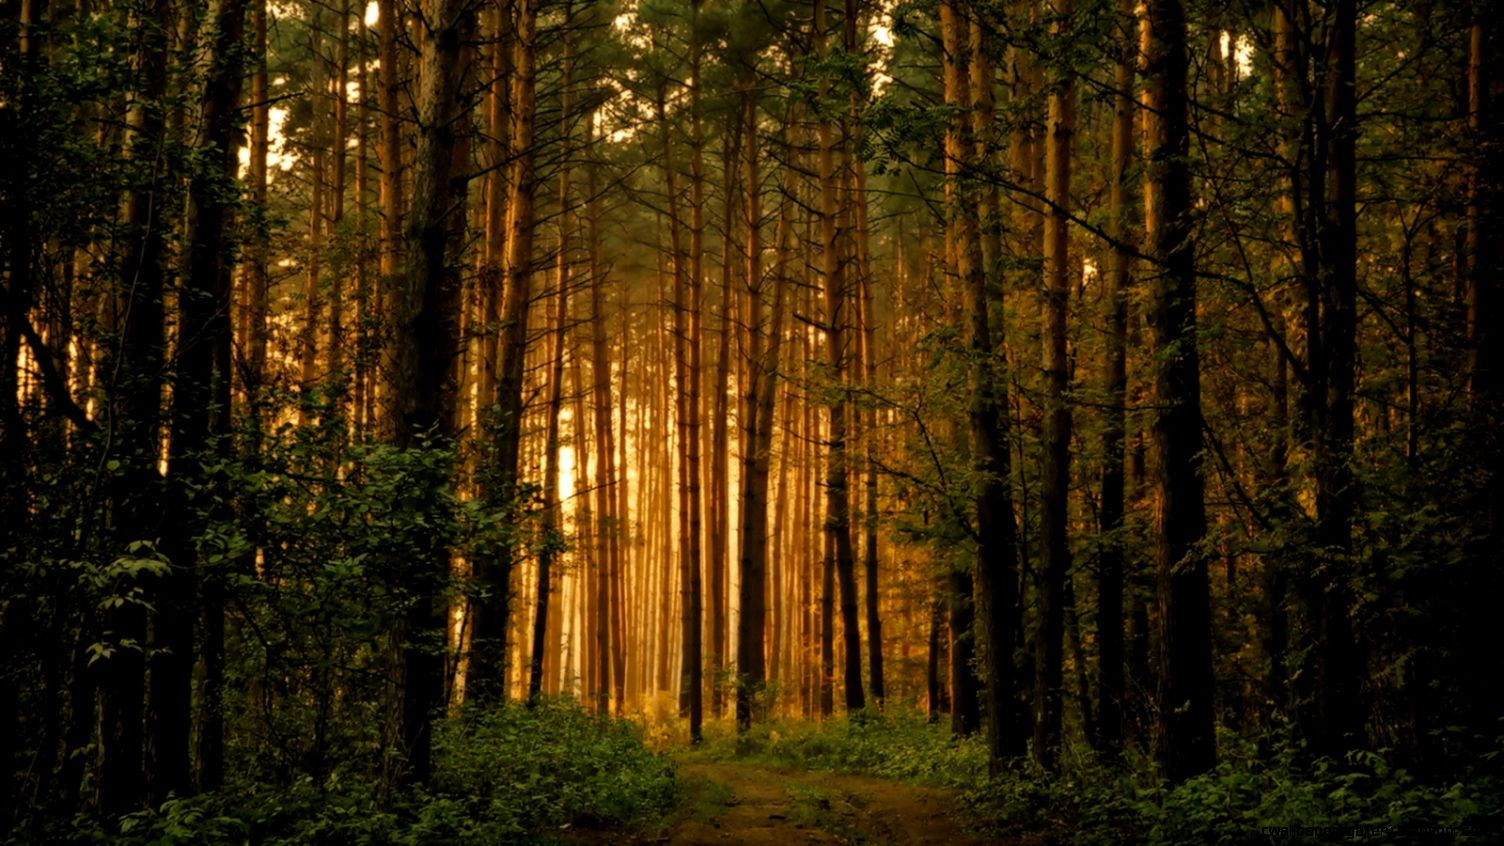 forest trees wallpaper landscape nature wallpaper 1600 900